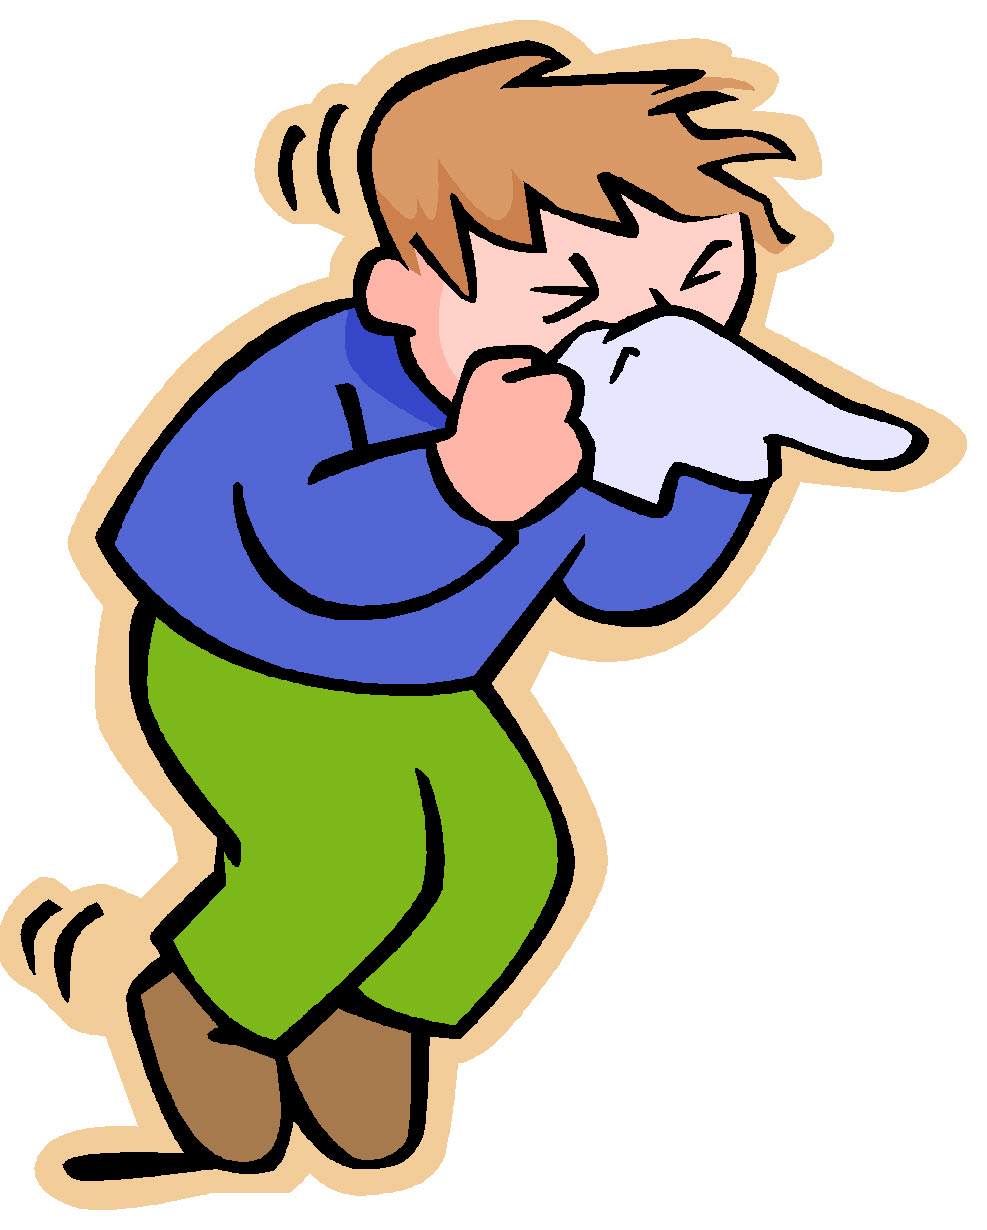 Flu clipart pictures graphic free library Flu Clip Art Free | Clipart Panda - Free Clipart Images graphic free library